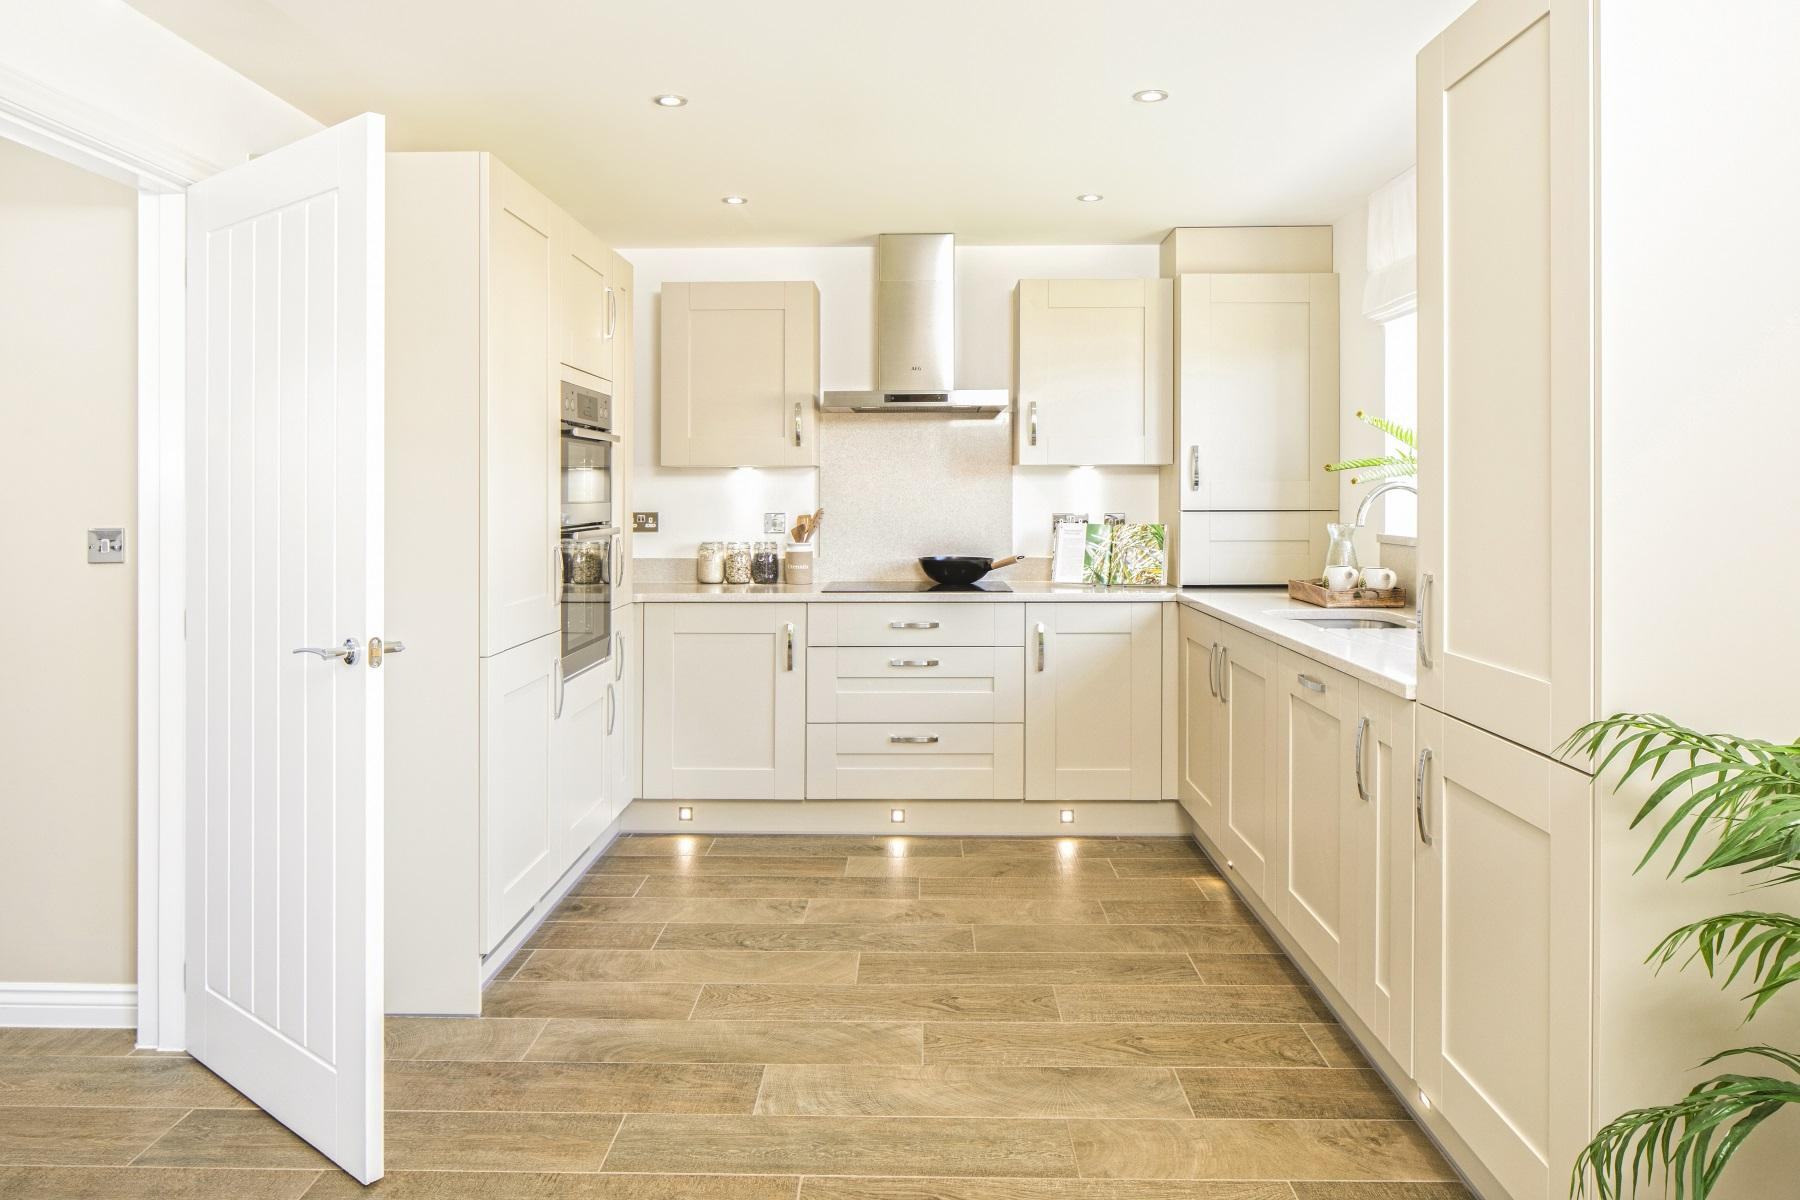 TW Exeter - Cranbrook - Shelford example kitchen